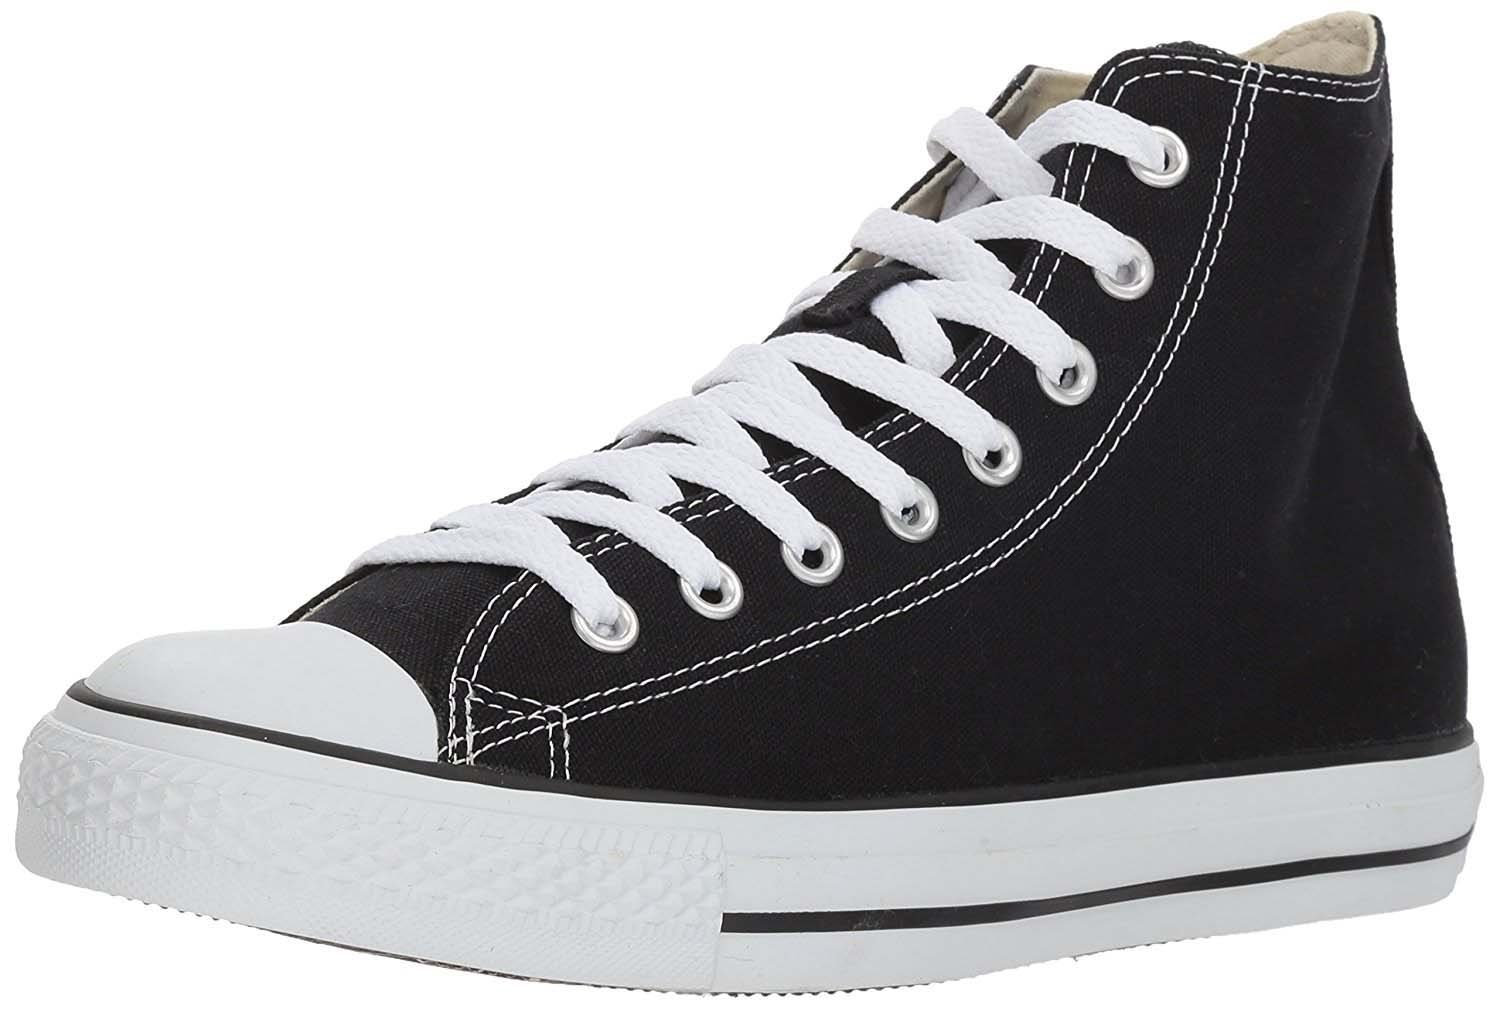 Converse Chuck Taylor All Star High Top Black 10 D(M) US